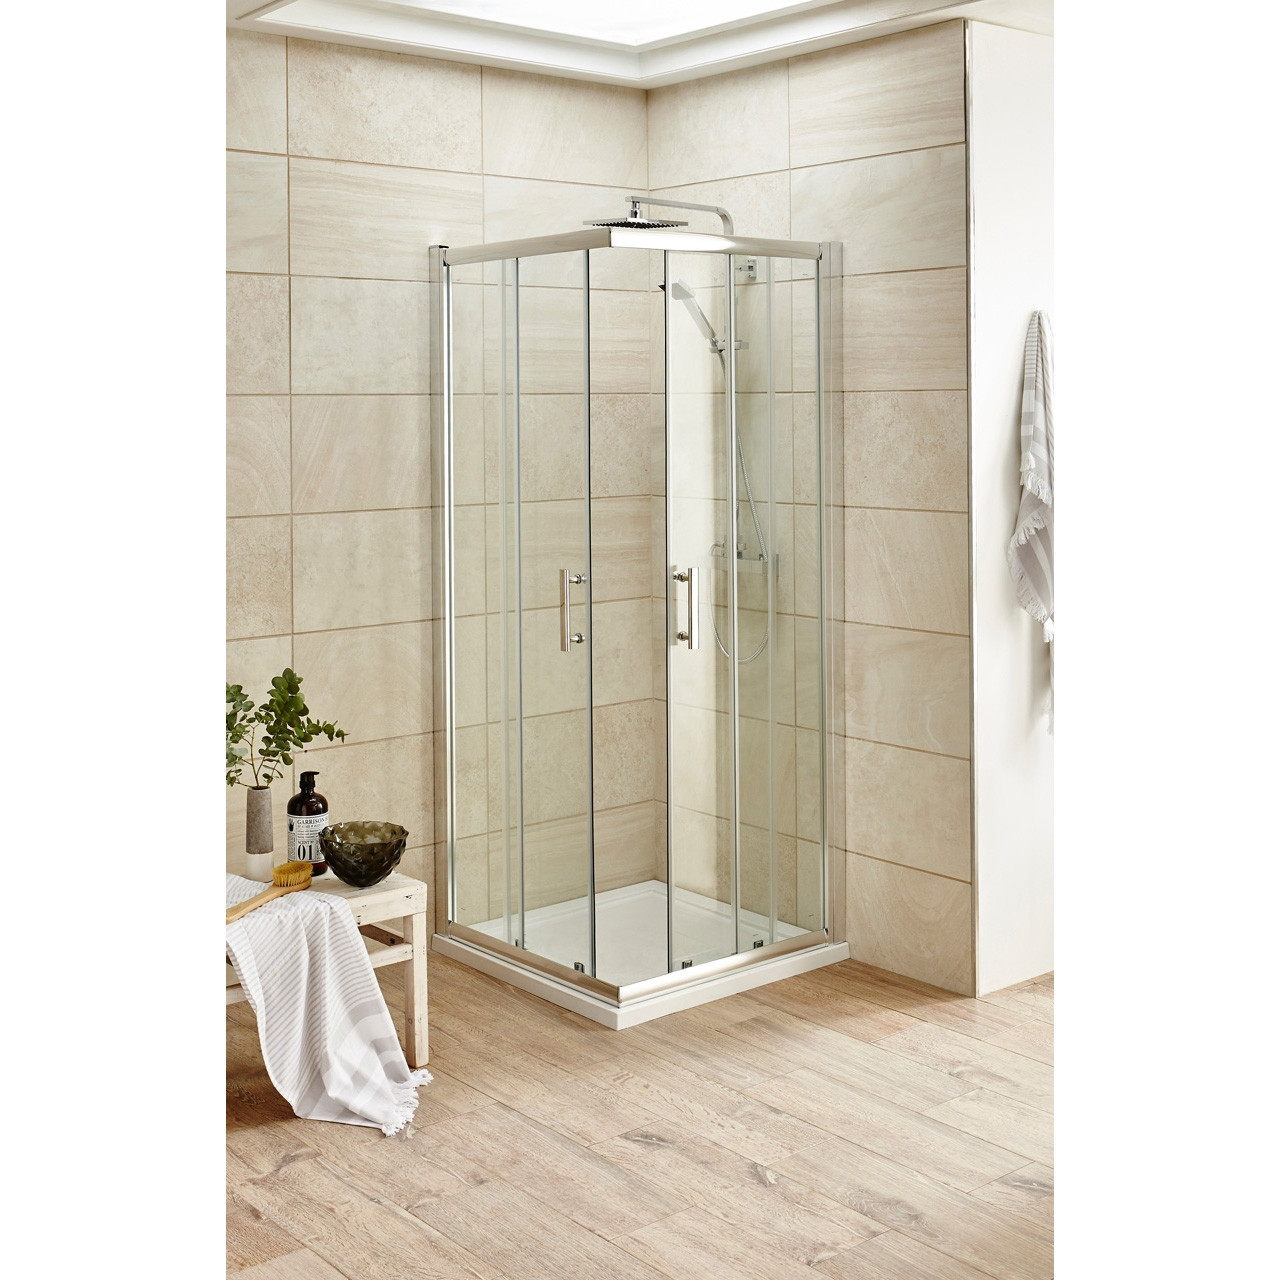 Premier Chrome Pacific 900mm Corner Entry 6mm Thick- AFCE9090